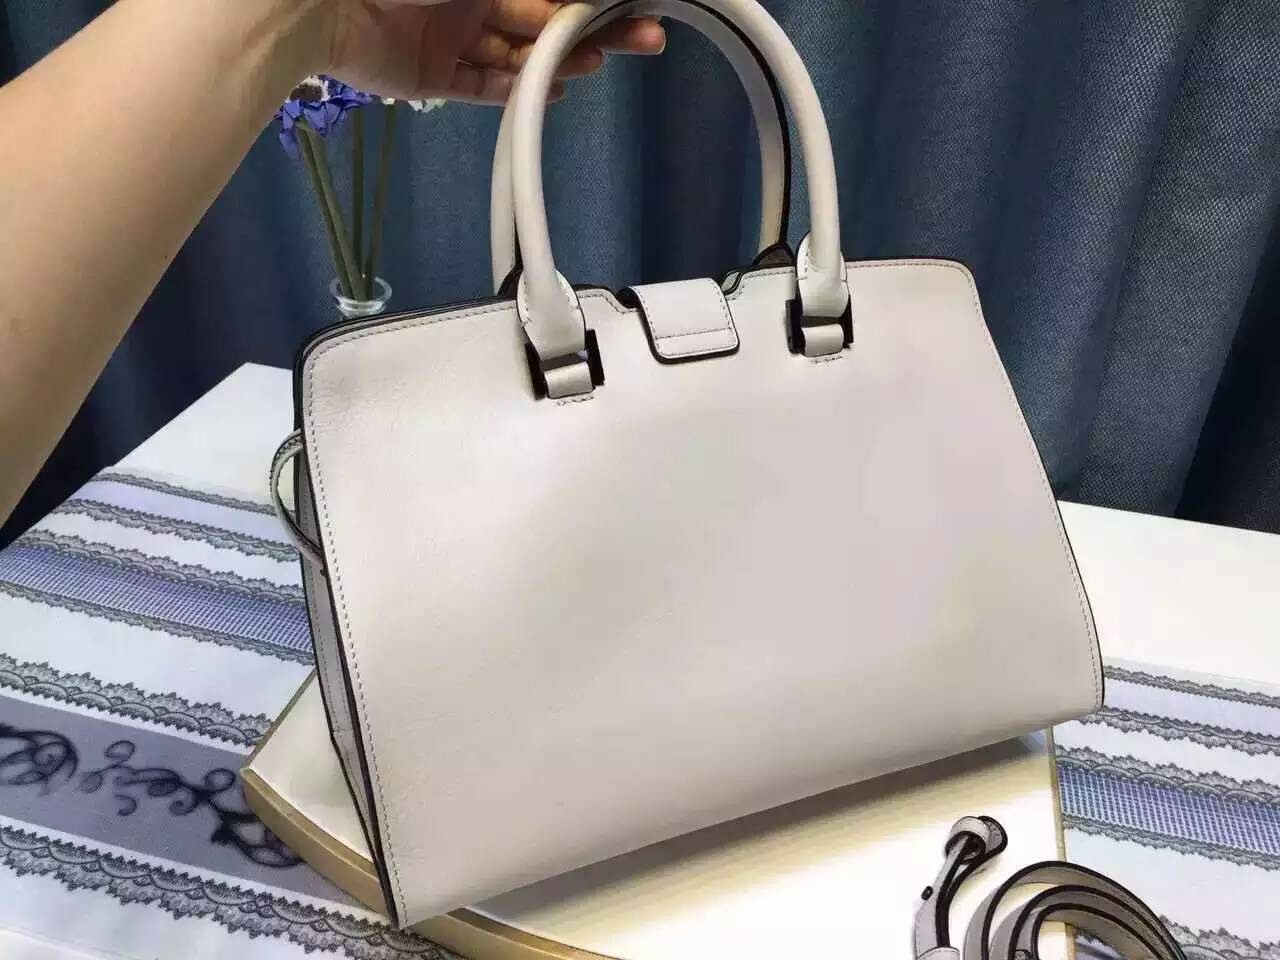 S/S 2016 New Saint Laurent Bag Cheap Sale-Saint Laurent Small Monogram Cabas Bag in Dove White and Black Leather